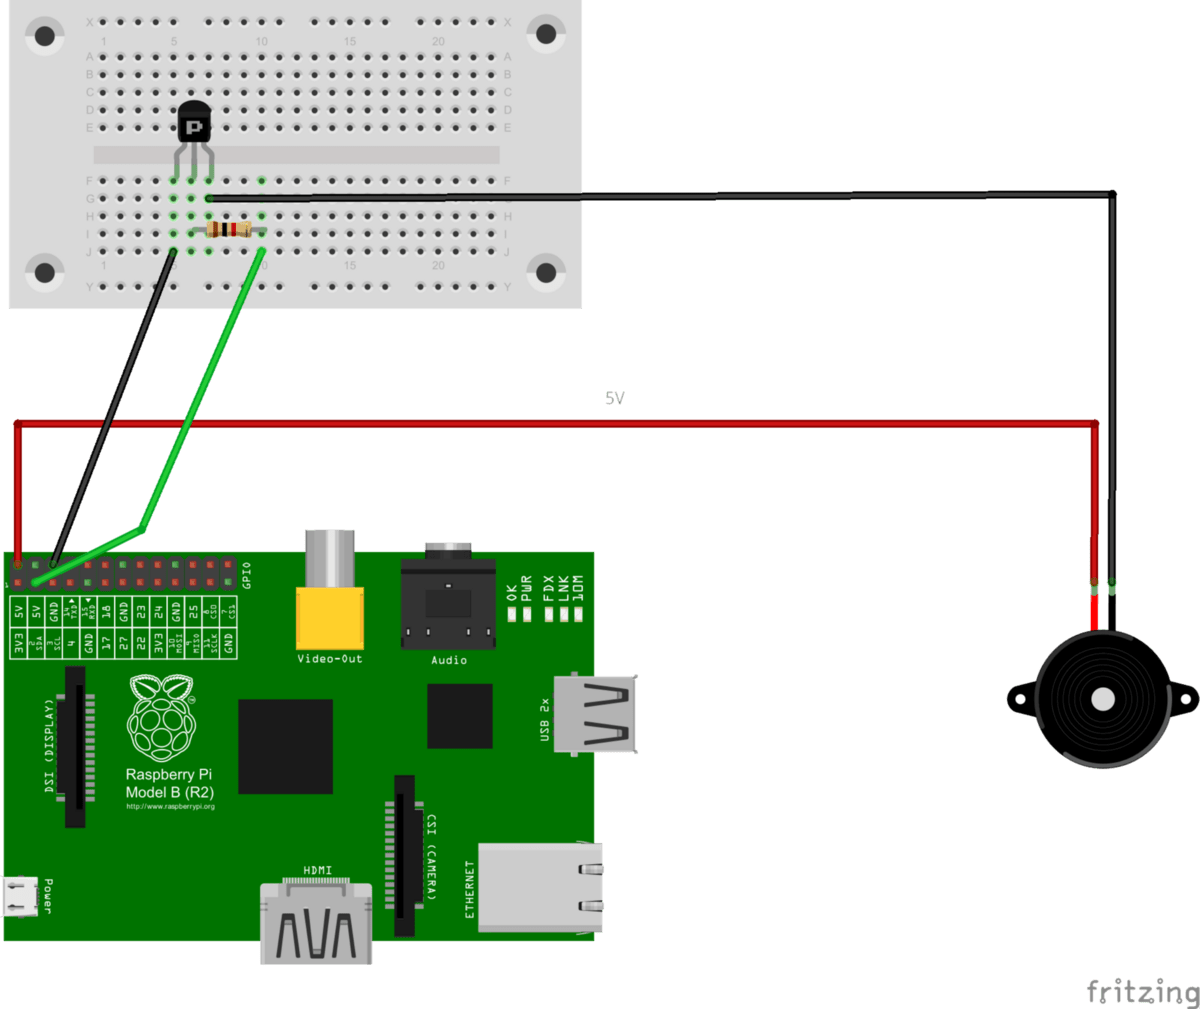 raspberry pi 3 model b wiring diagram stihl 015 parts temperature controlled fan hacker noon pin 6 ground will be connected over the transistor with 2nd wire